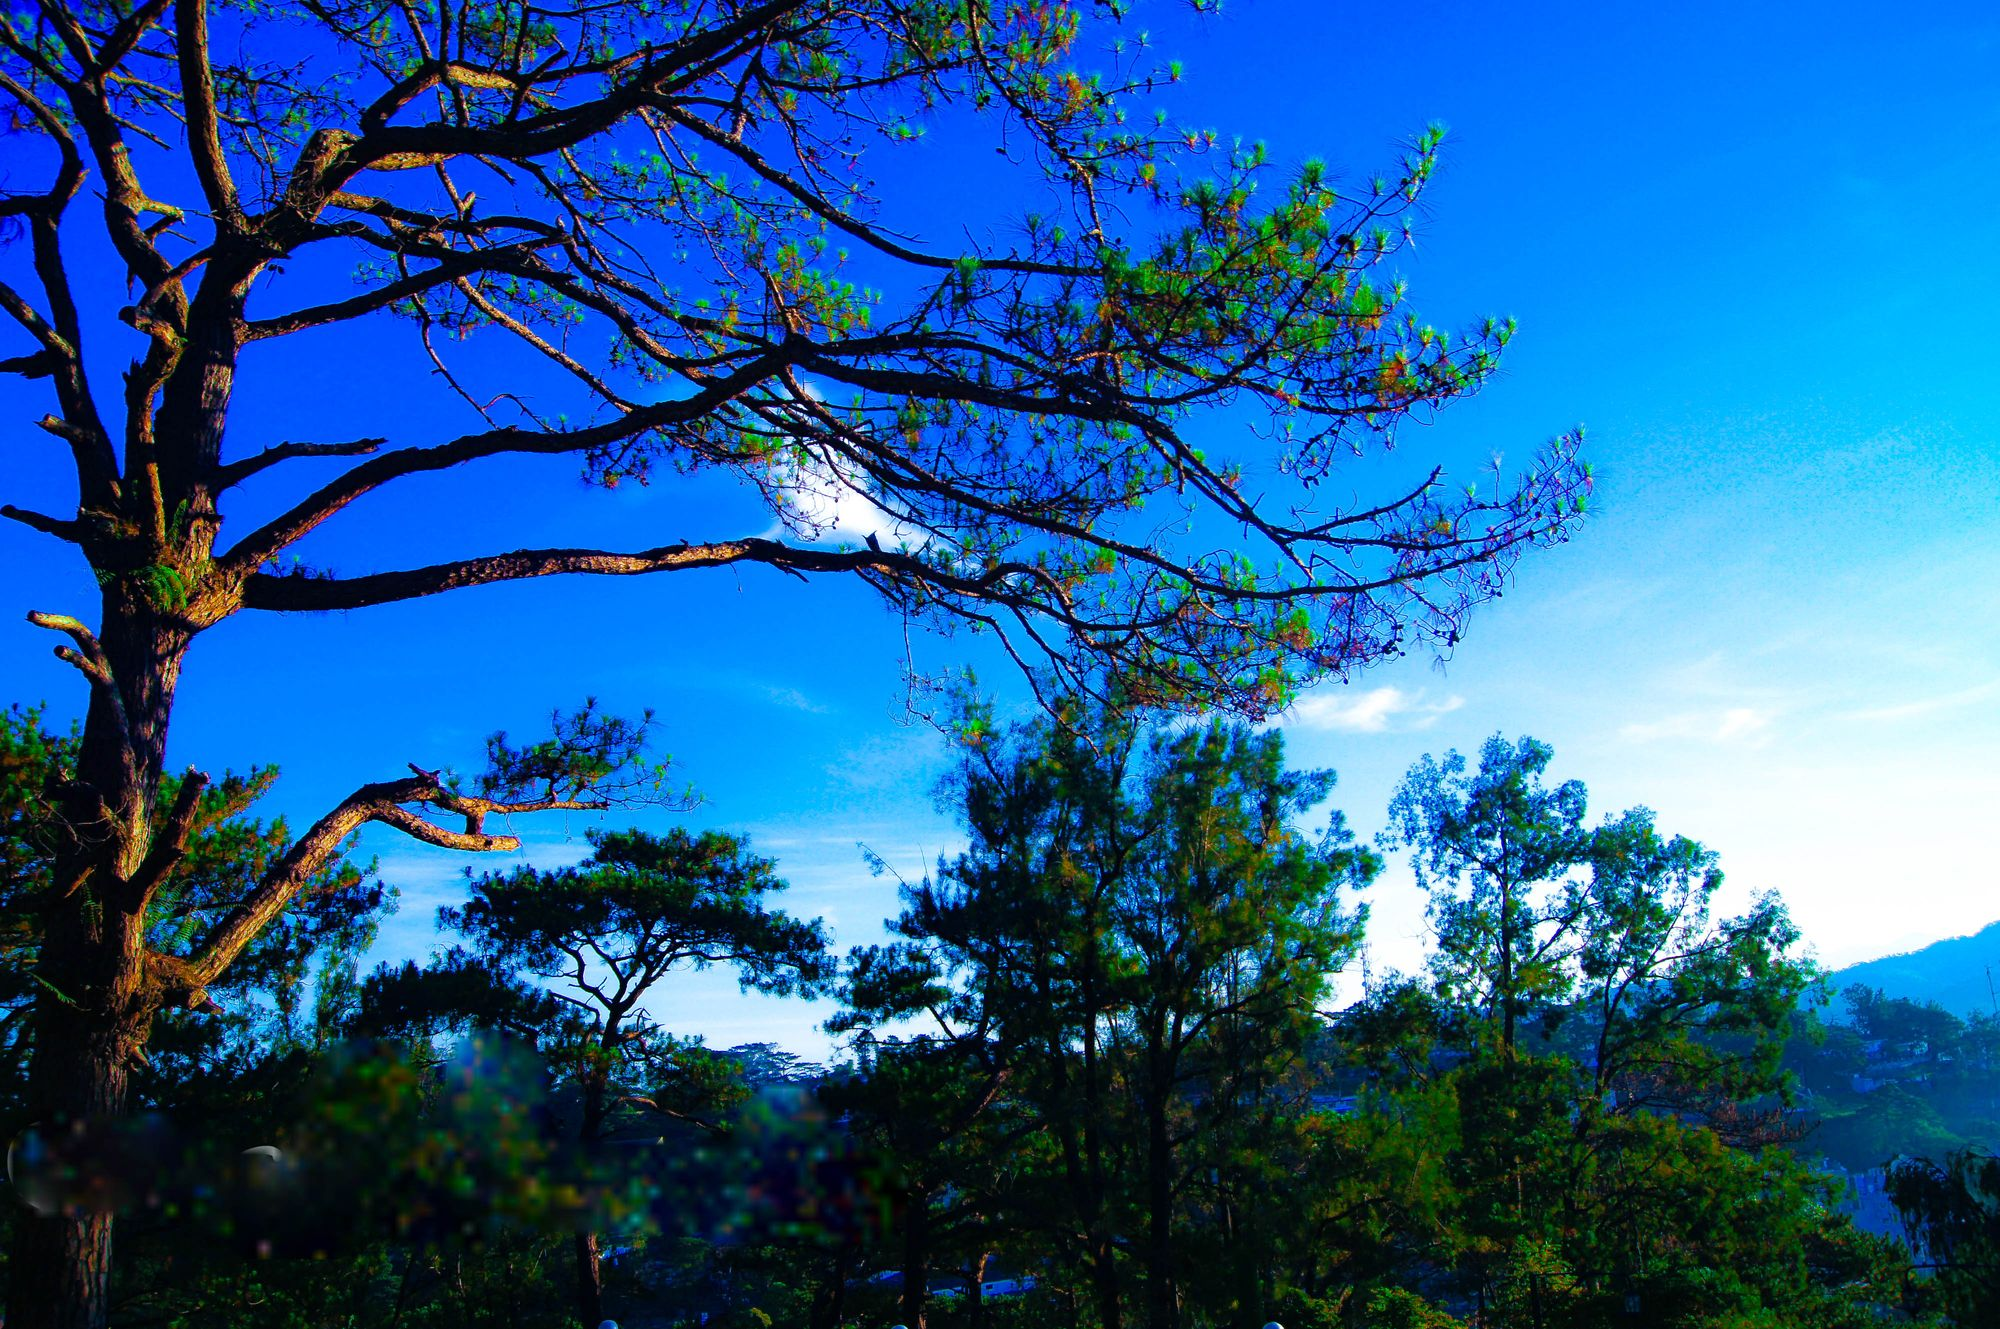 Pine trees under a blue sky